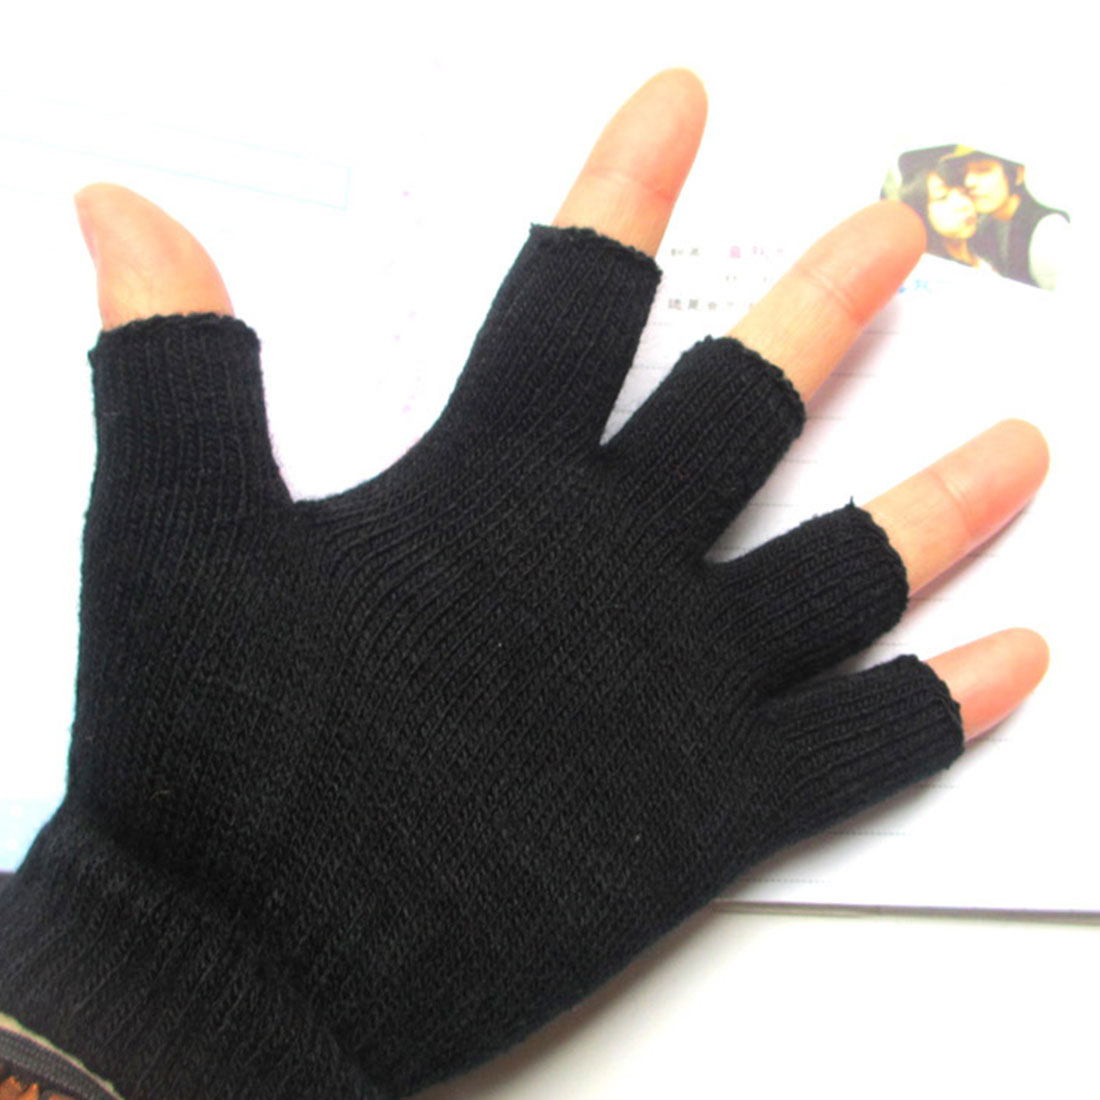 Fashion Warm Half Finger Gloves Knit Men's Fingerless Gloves Computer Learning Gloves Casual Fashion Autumn And Winter